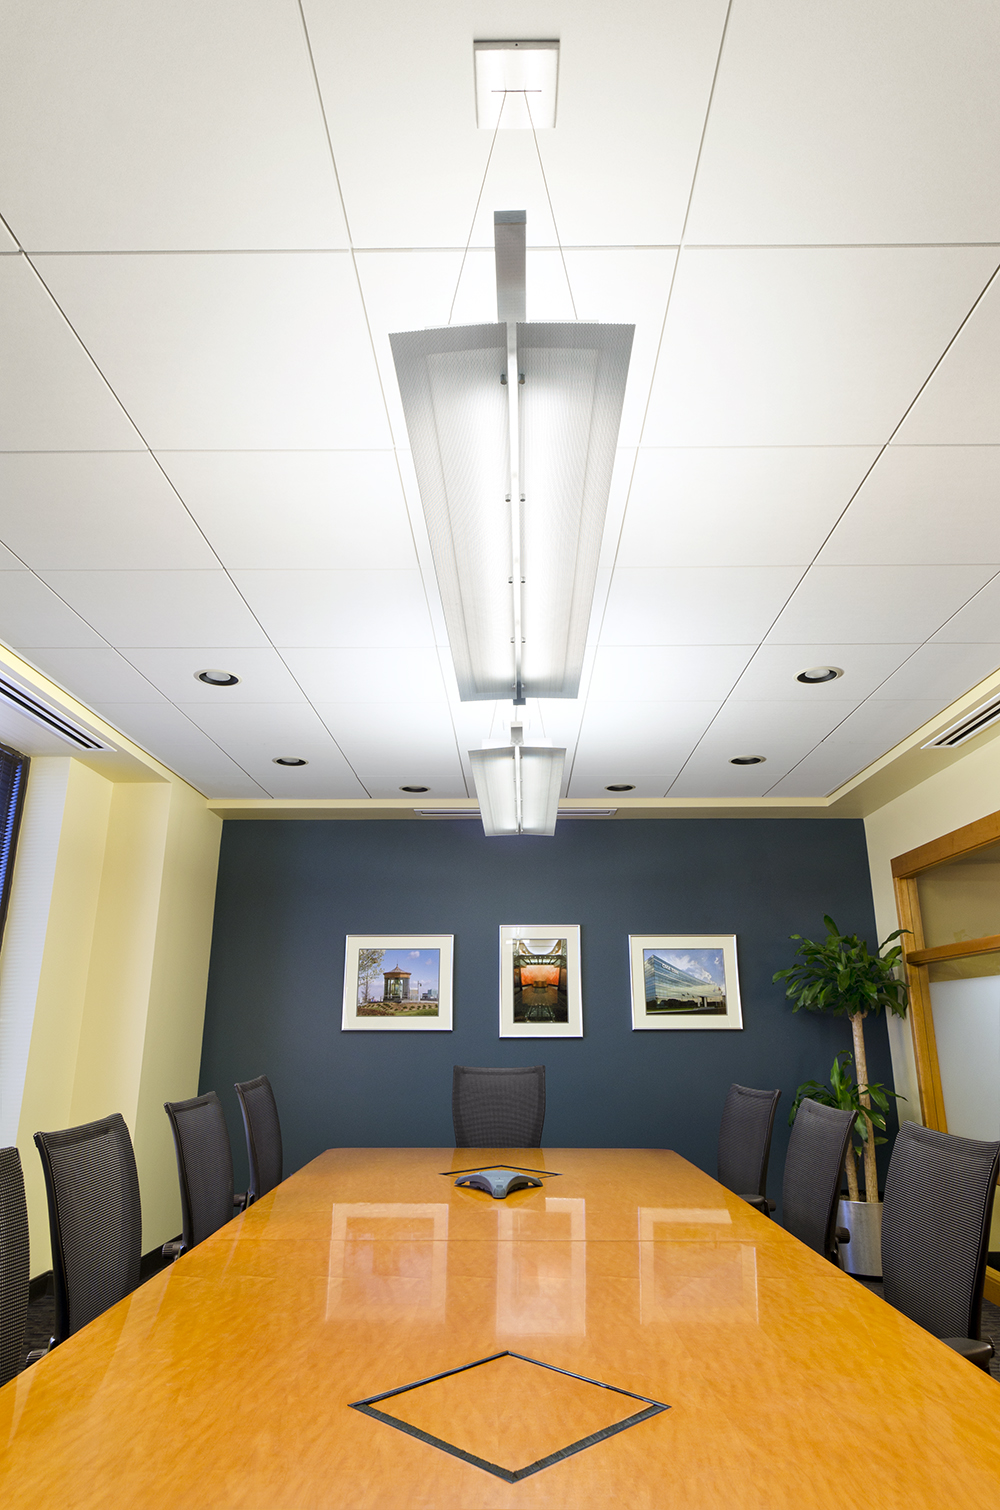 Conference Room Lighting Design: Office Lighting Designs